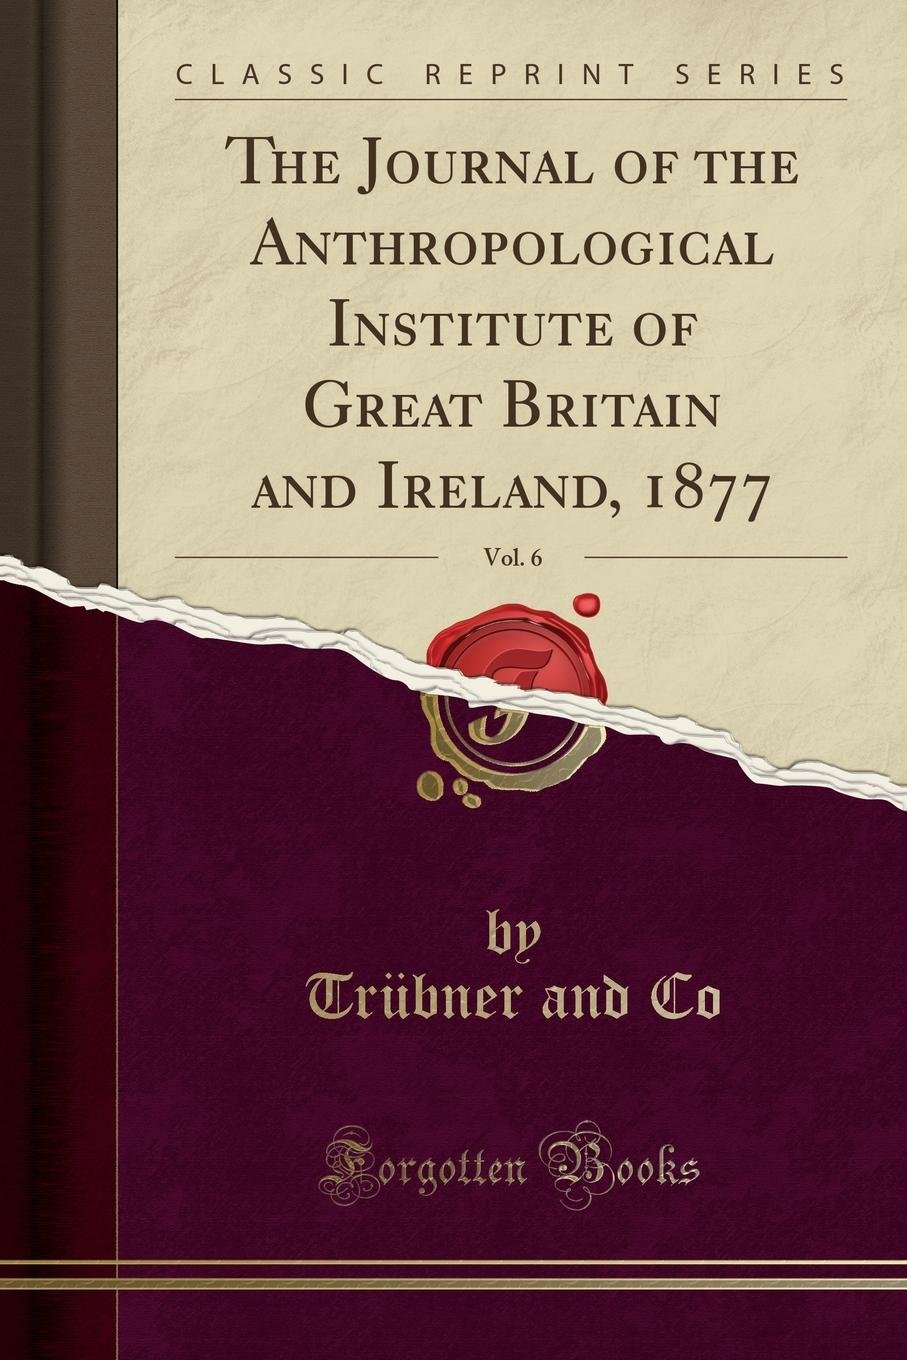 The Journal of the Anthropological Institute of Great Britain and Ireland, 1877, Vol. 6 (Classic Reprint) PDF